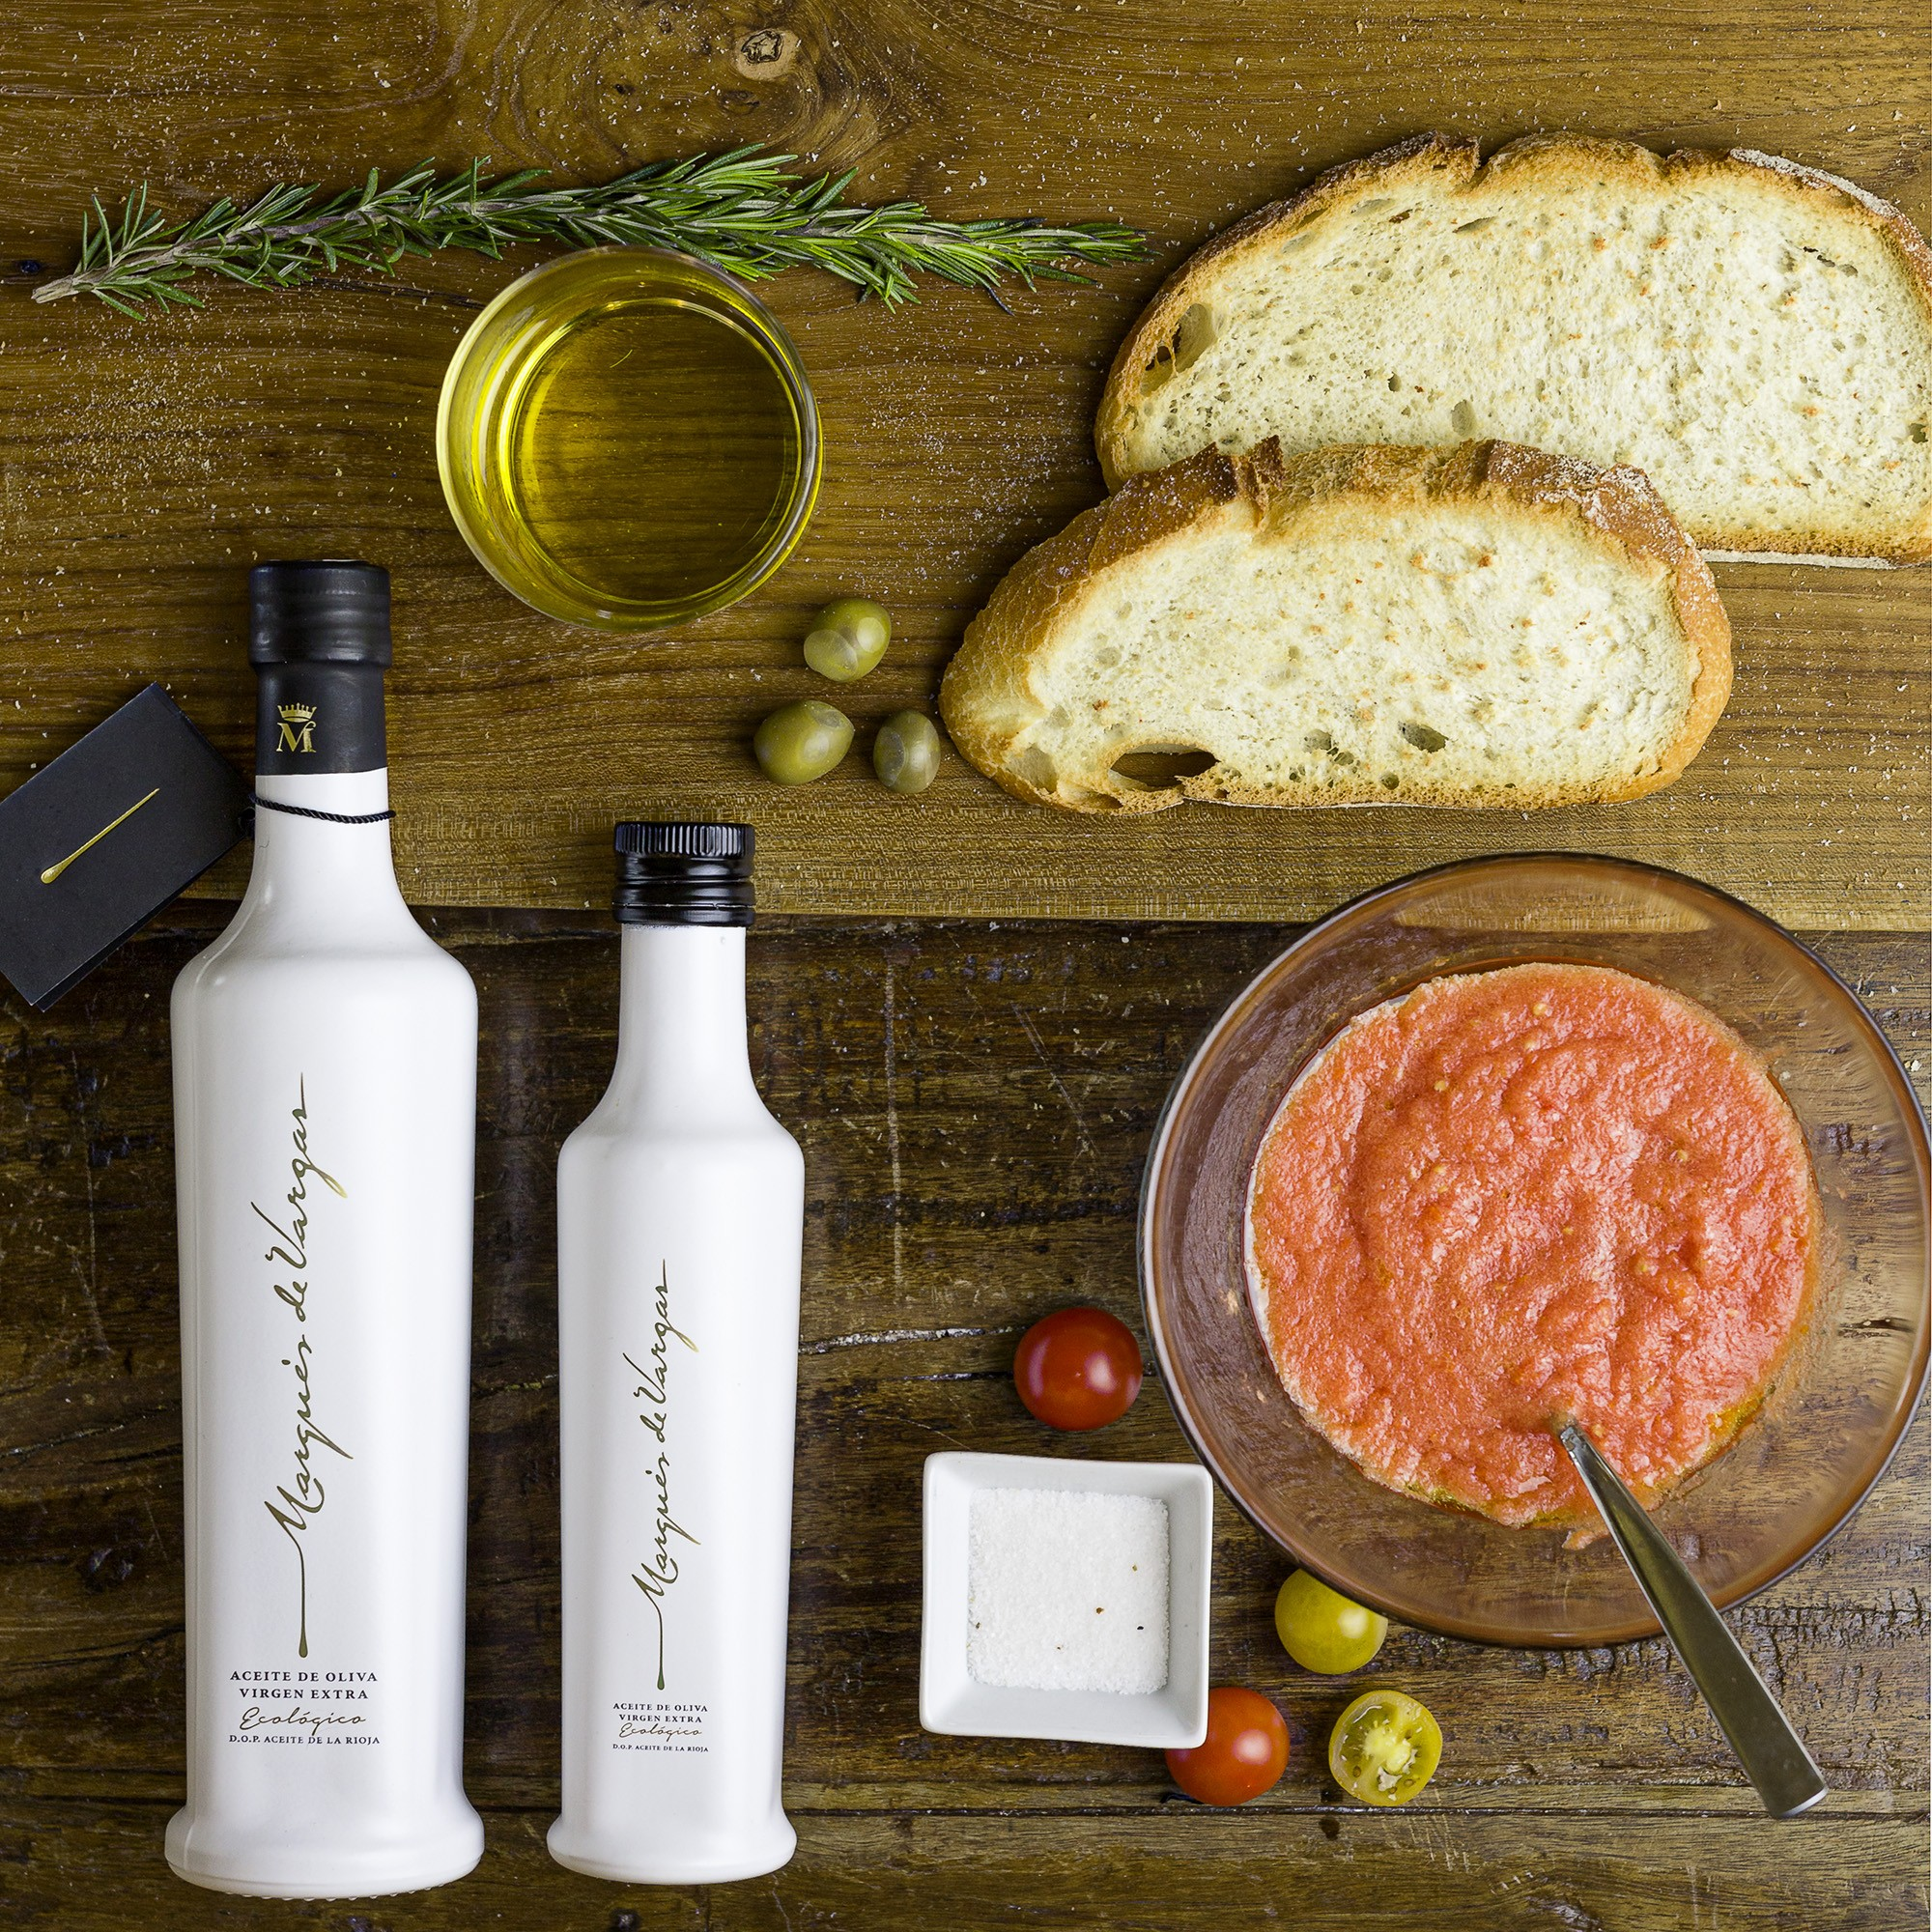 Marqués de Vargas launches its Extra Virgin Olive Oil Ecological